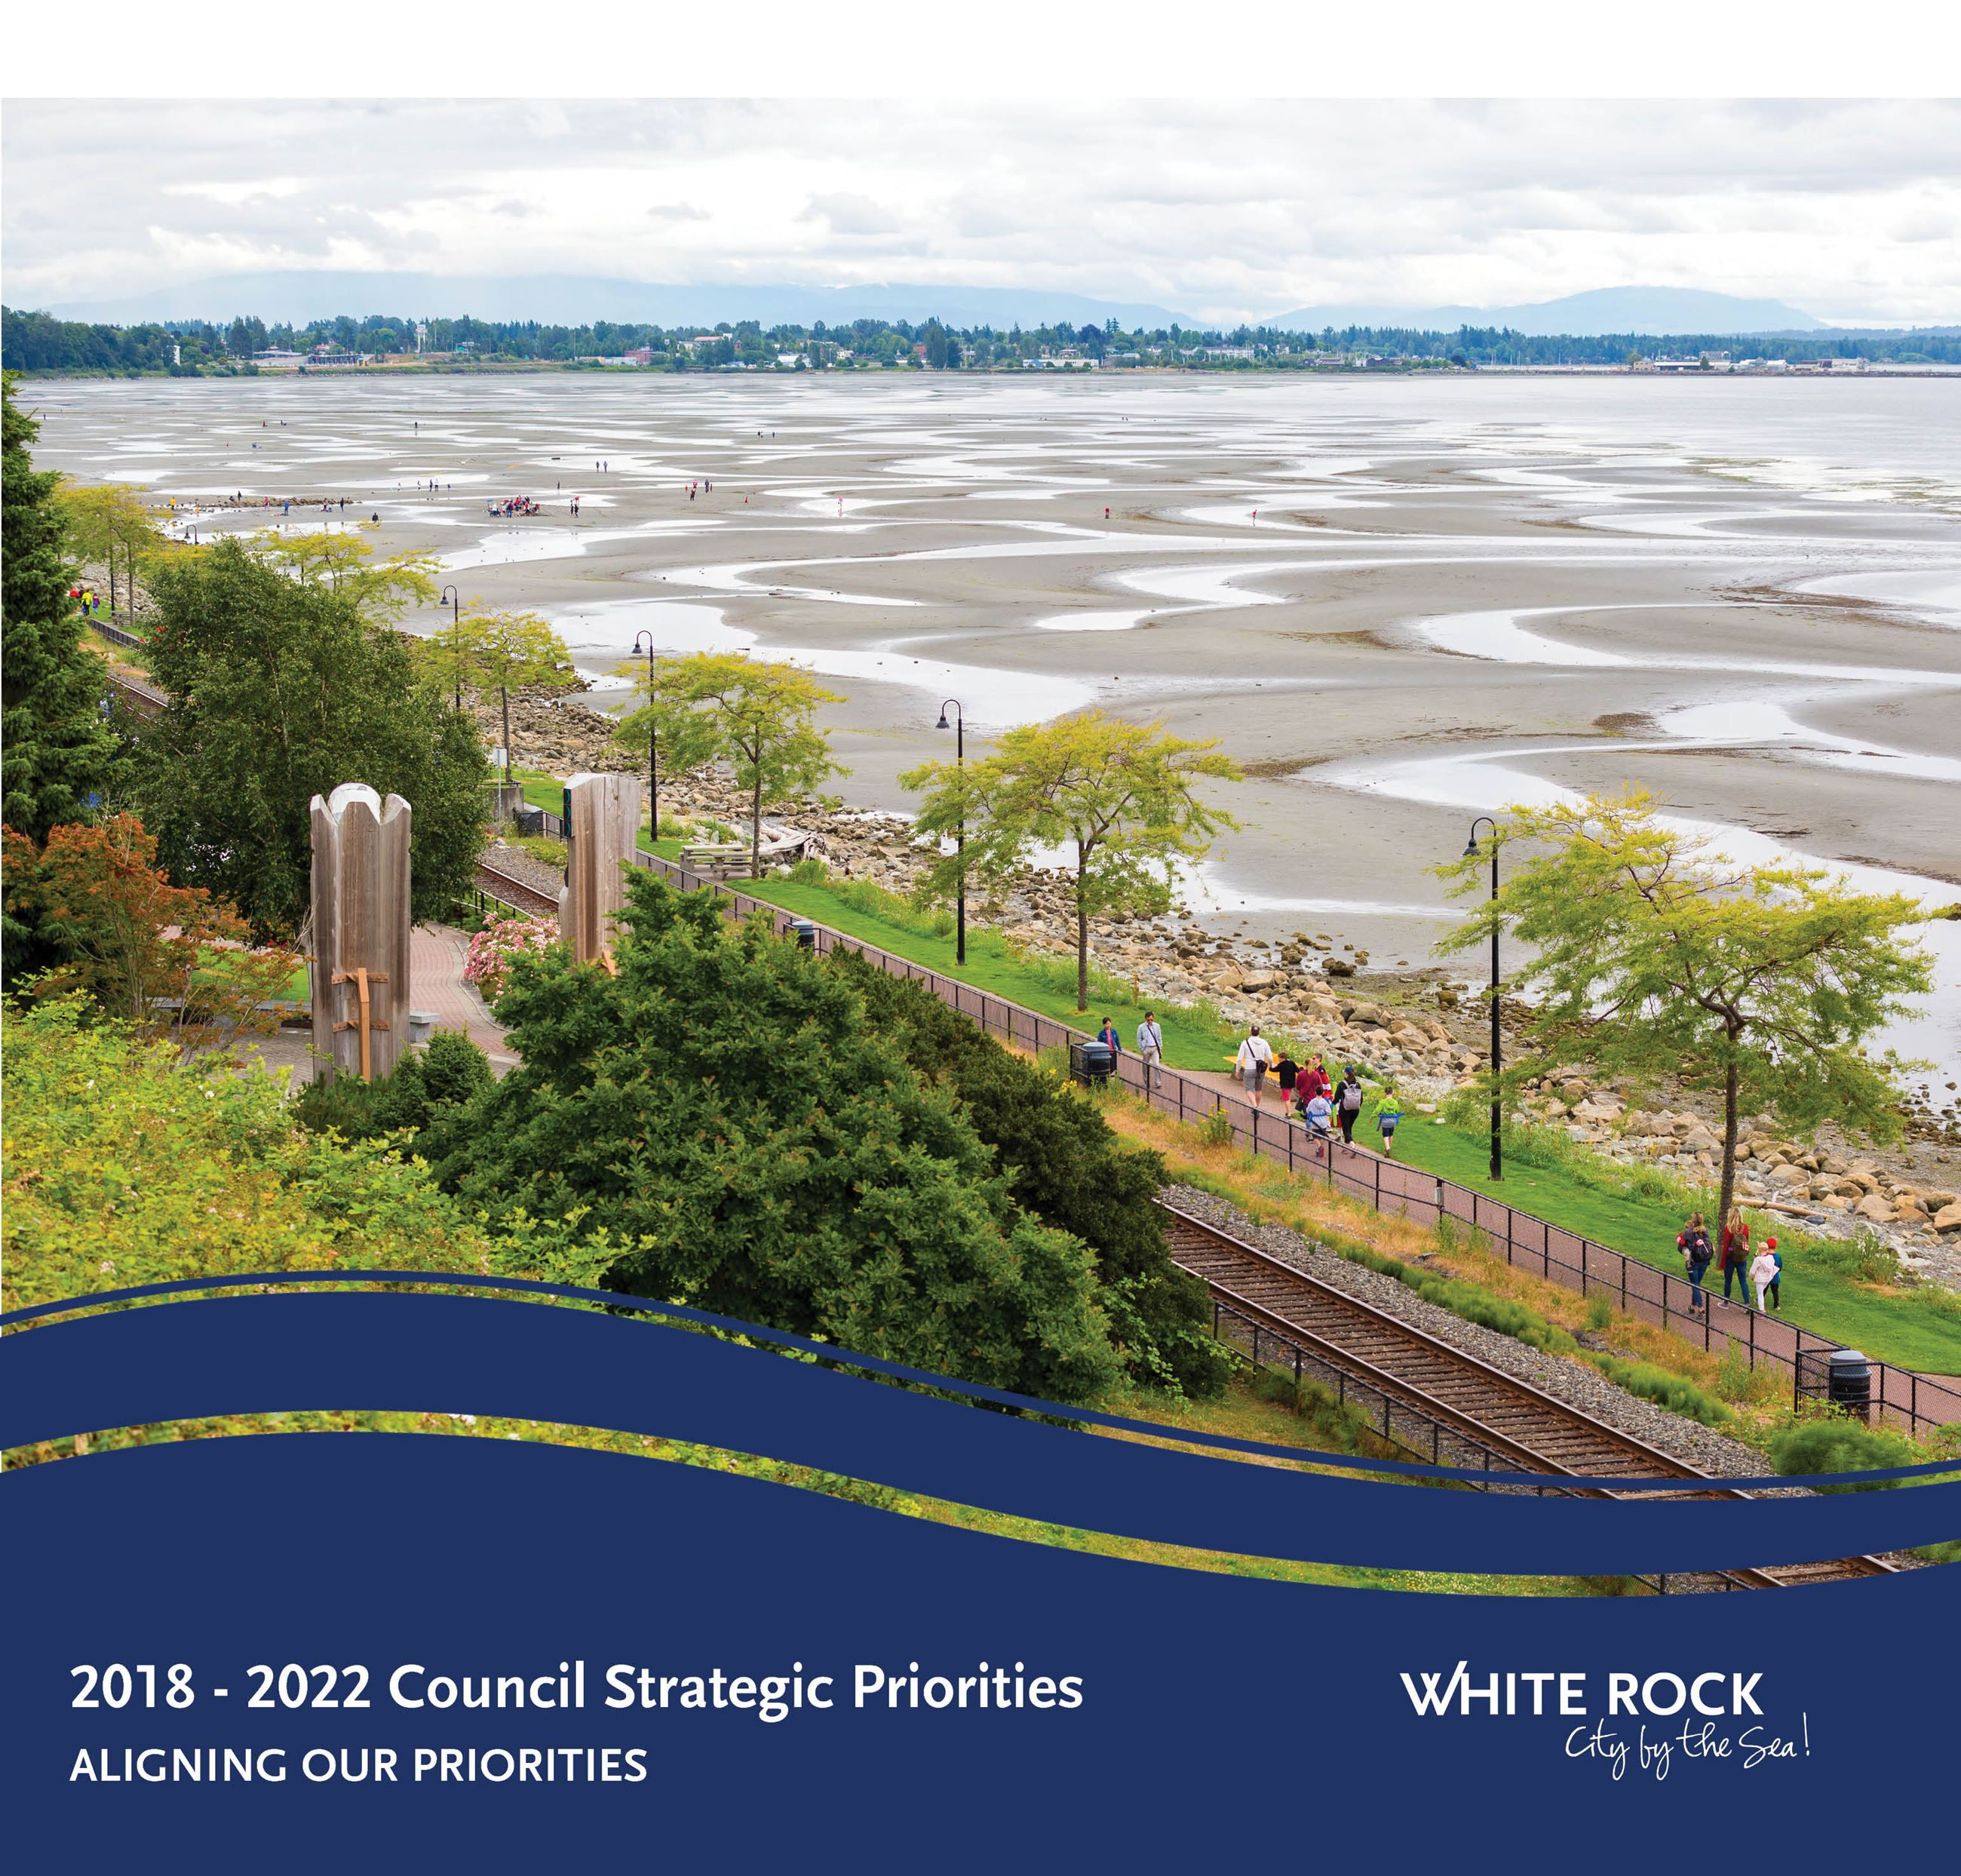 Council Strategic Priorities 2018-2022